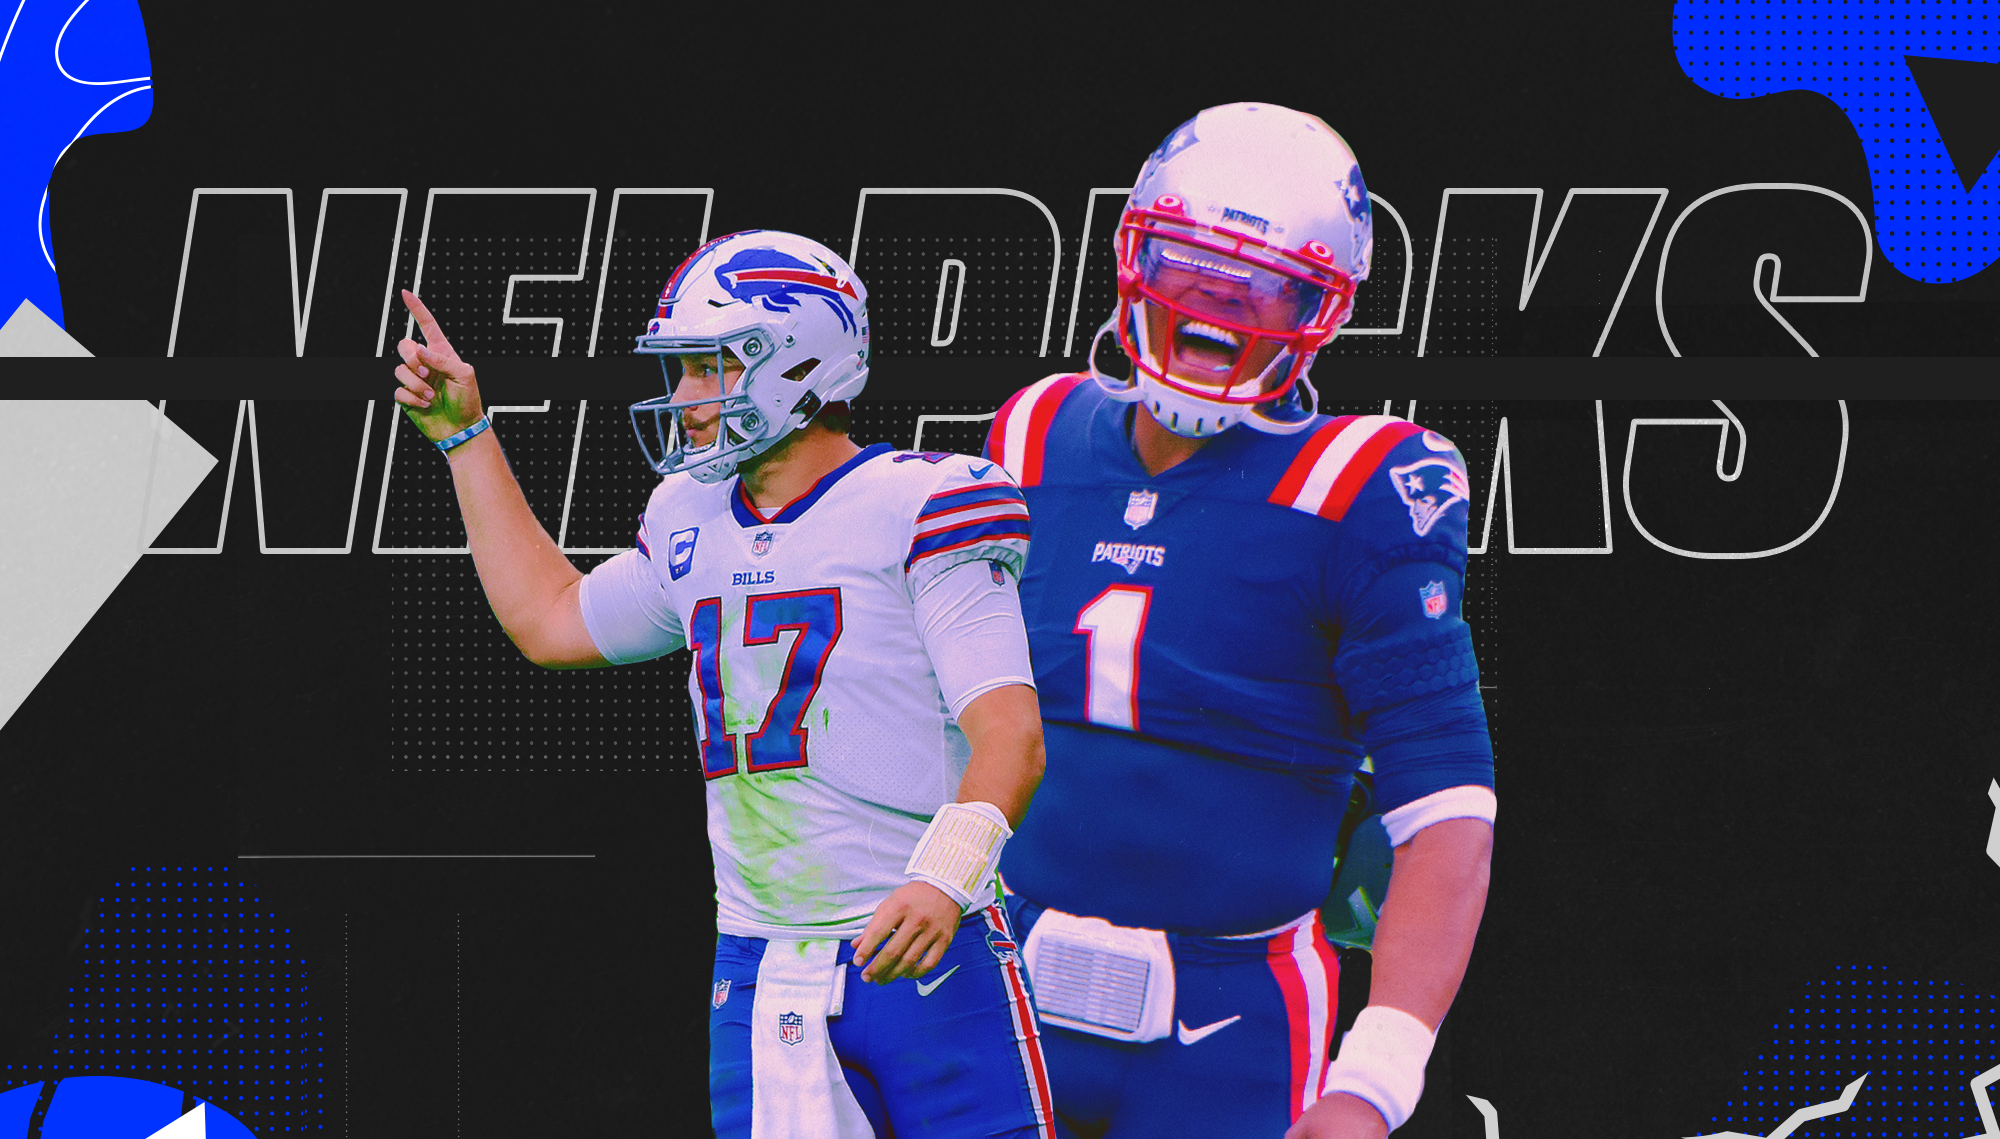 """This is original SB Nation Art. It it two cut out photos of Cam Newton and Josh Allen, both celebrating on the football field. They are laid over a background that says """"NFL Picks"""""""